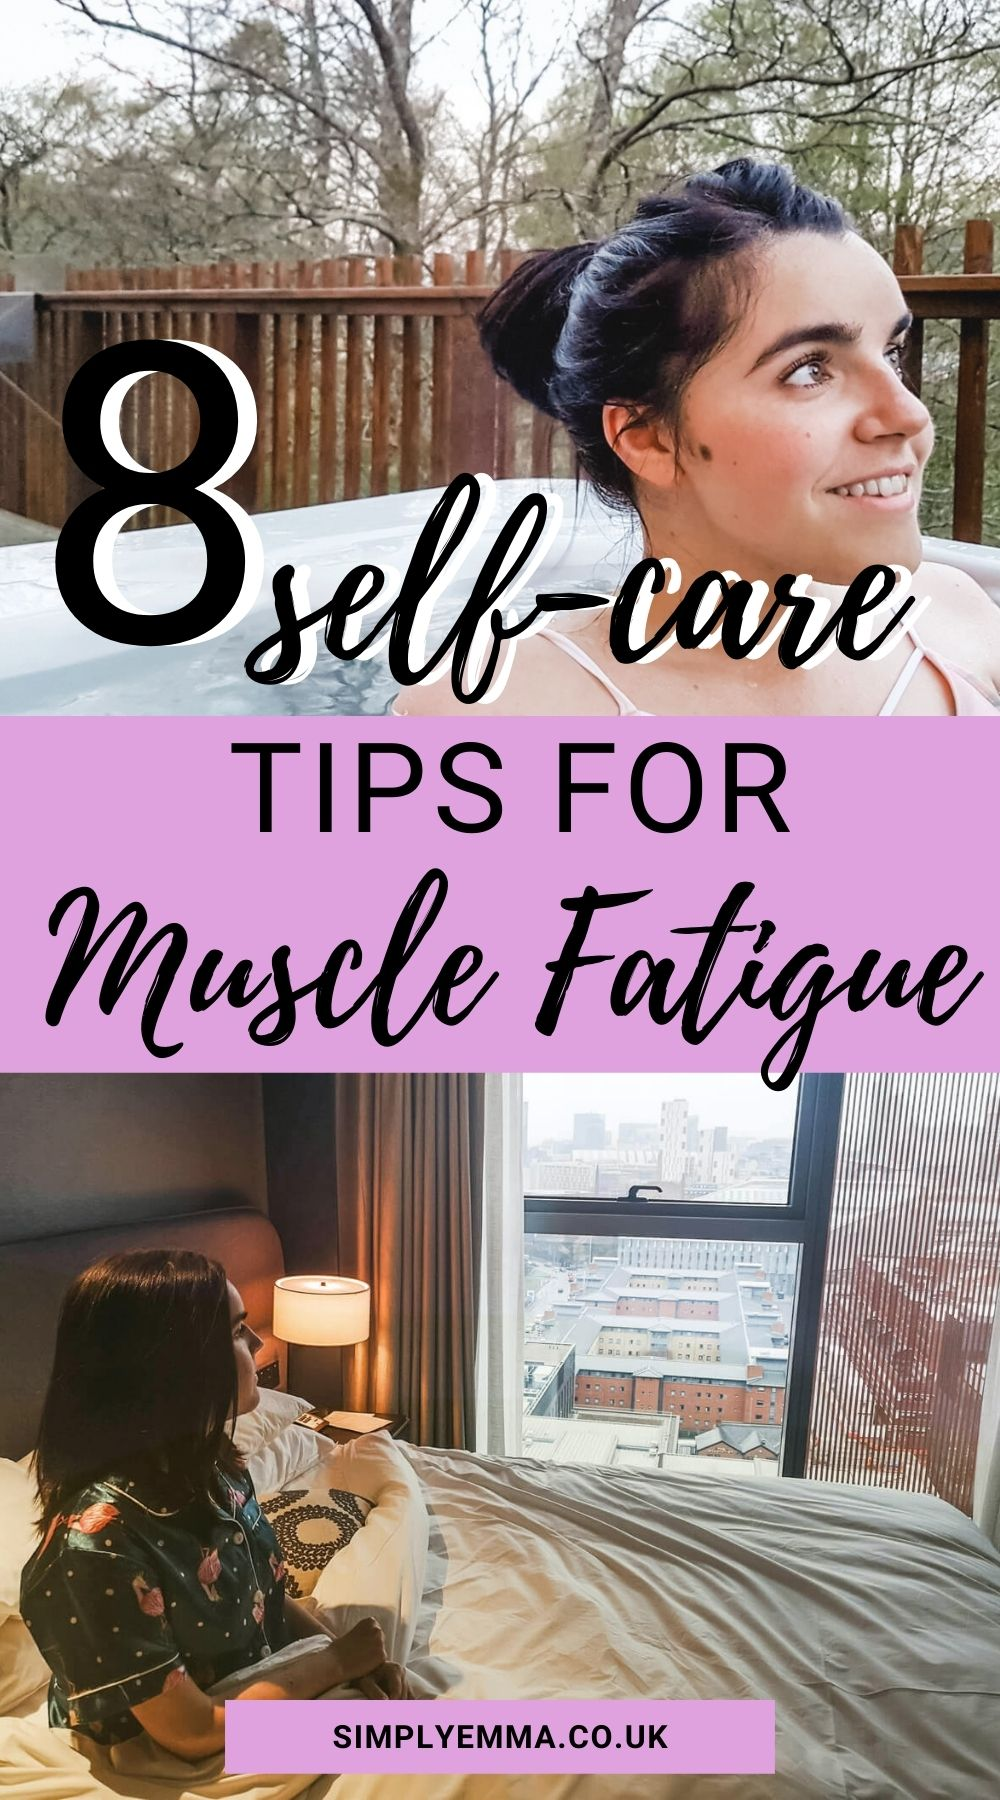 "An Pinterest image showing two photos of Emma, one of her sitting in bed and another sitting in a hot tub. Text reads ""8 self-care tips for muscle fatigue""."